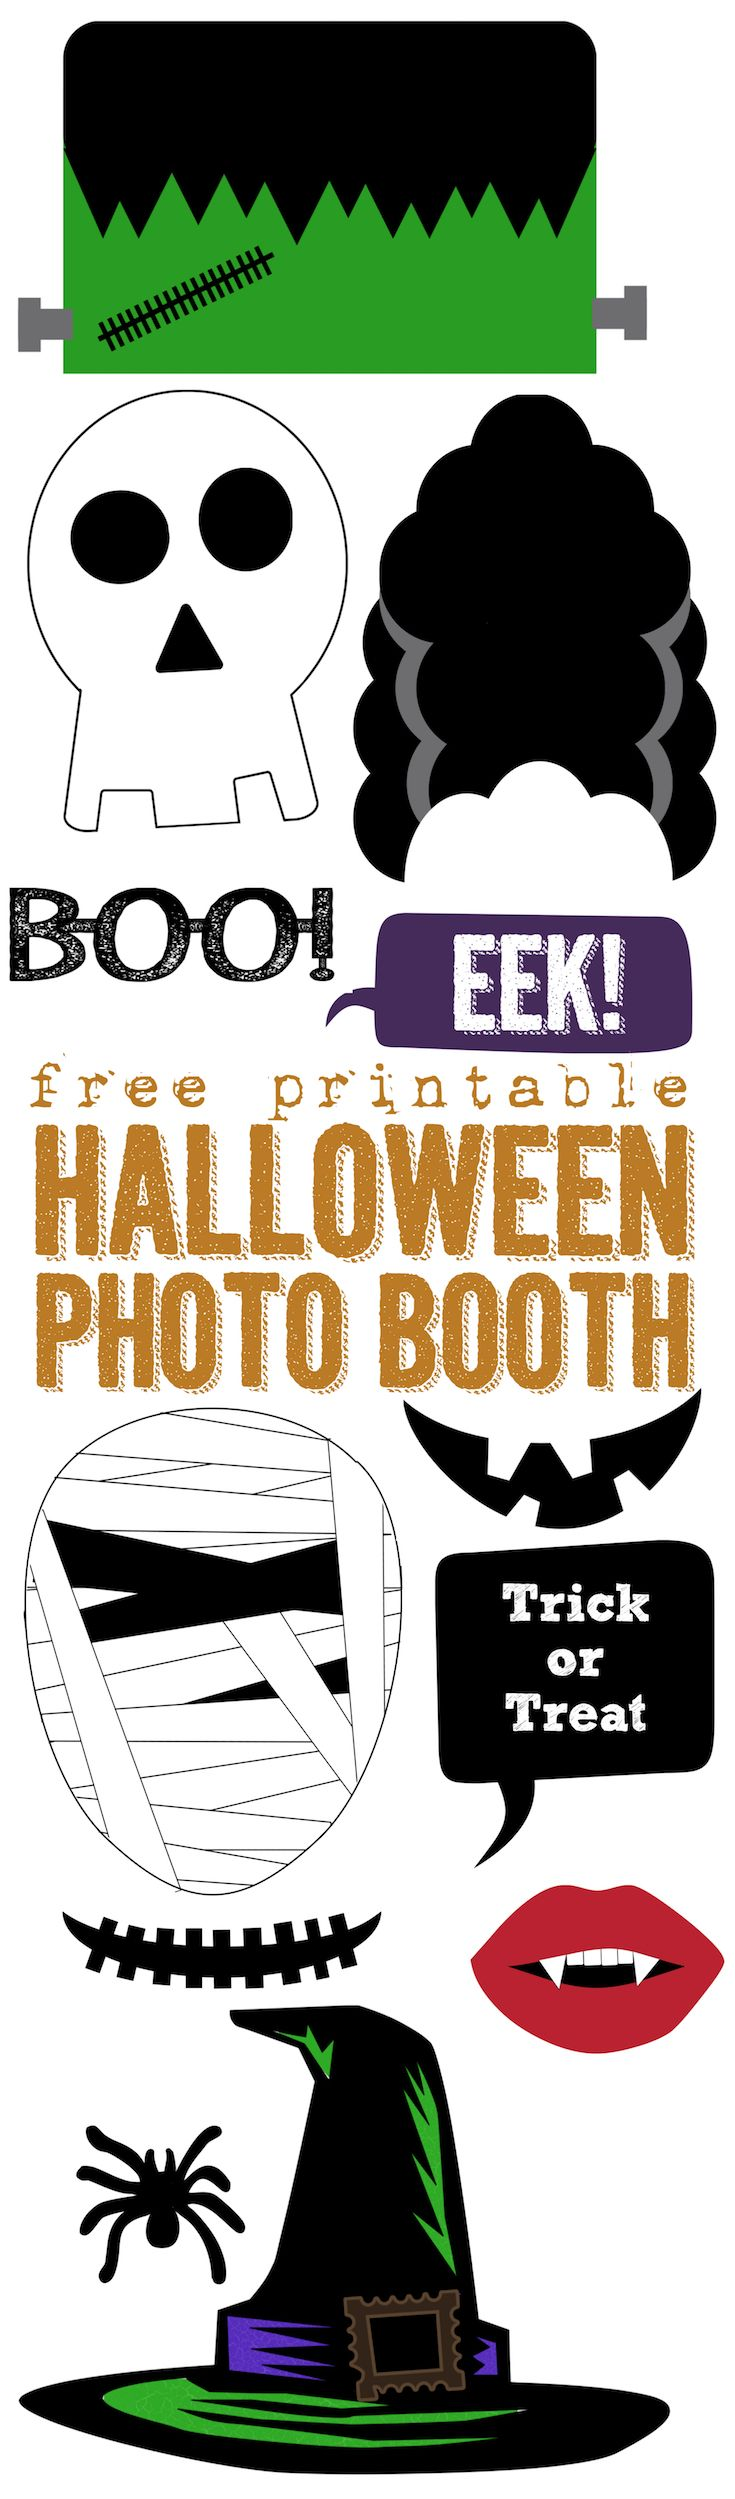 photo about Halloween Photo Booth Props Printable Free known as Free of charge Printable Halloween Image Booth Halloween Halloween